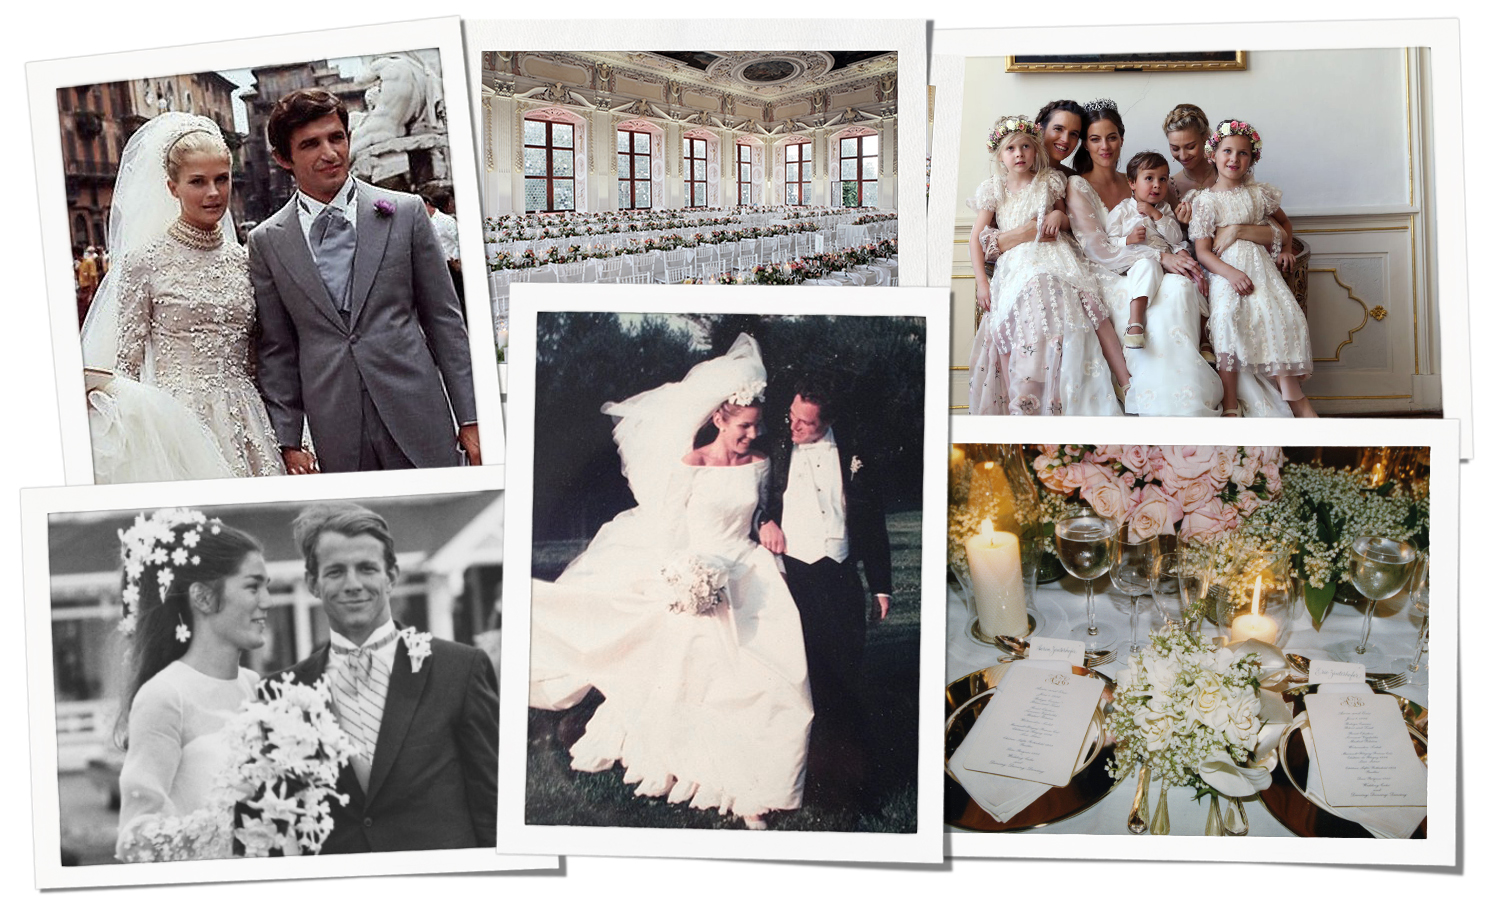 Snapshots from some of Aerin's favorite bridal looks, including her own wedding.